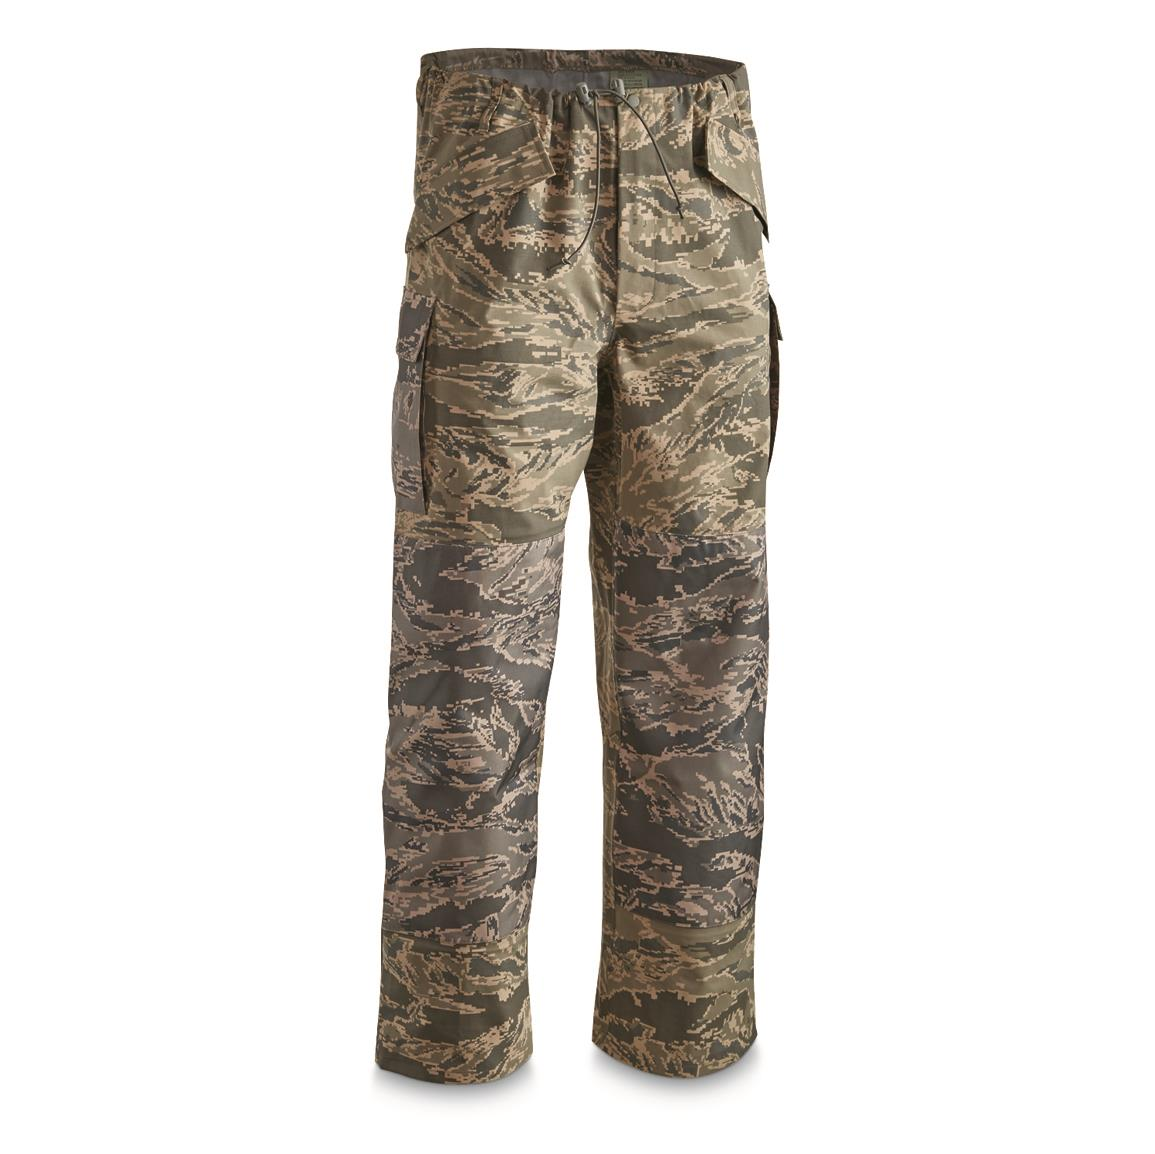 U.S. Military Surplus GORE-TEX APECS Pants, New, ABU Camo